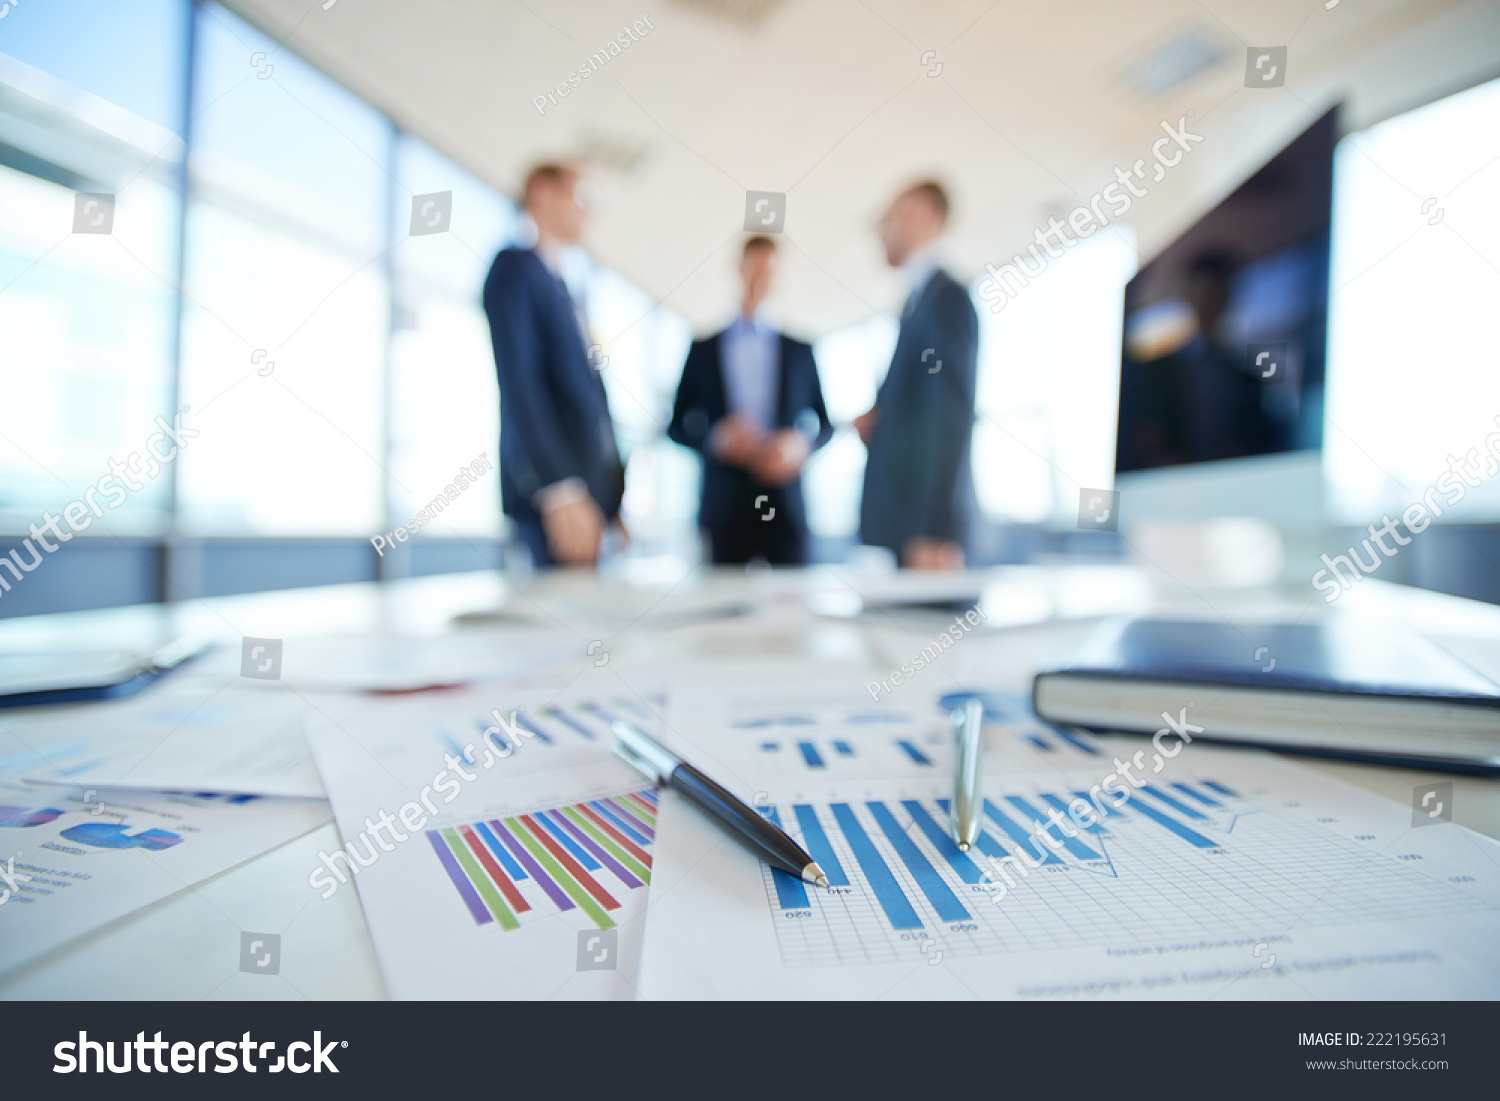 Documents On Office Table And Three Men Talking In The